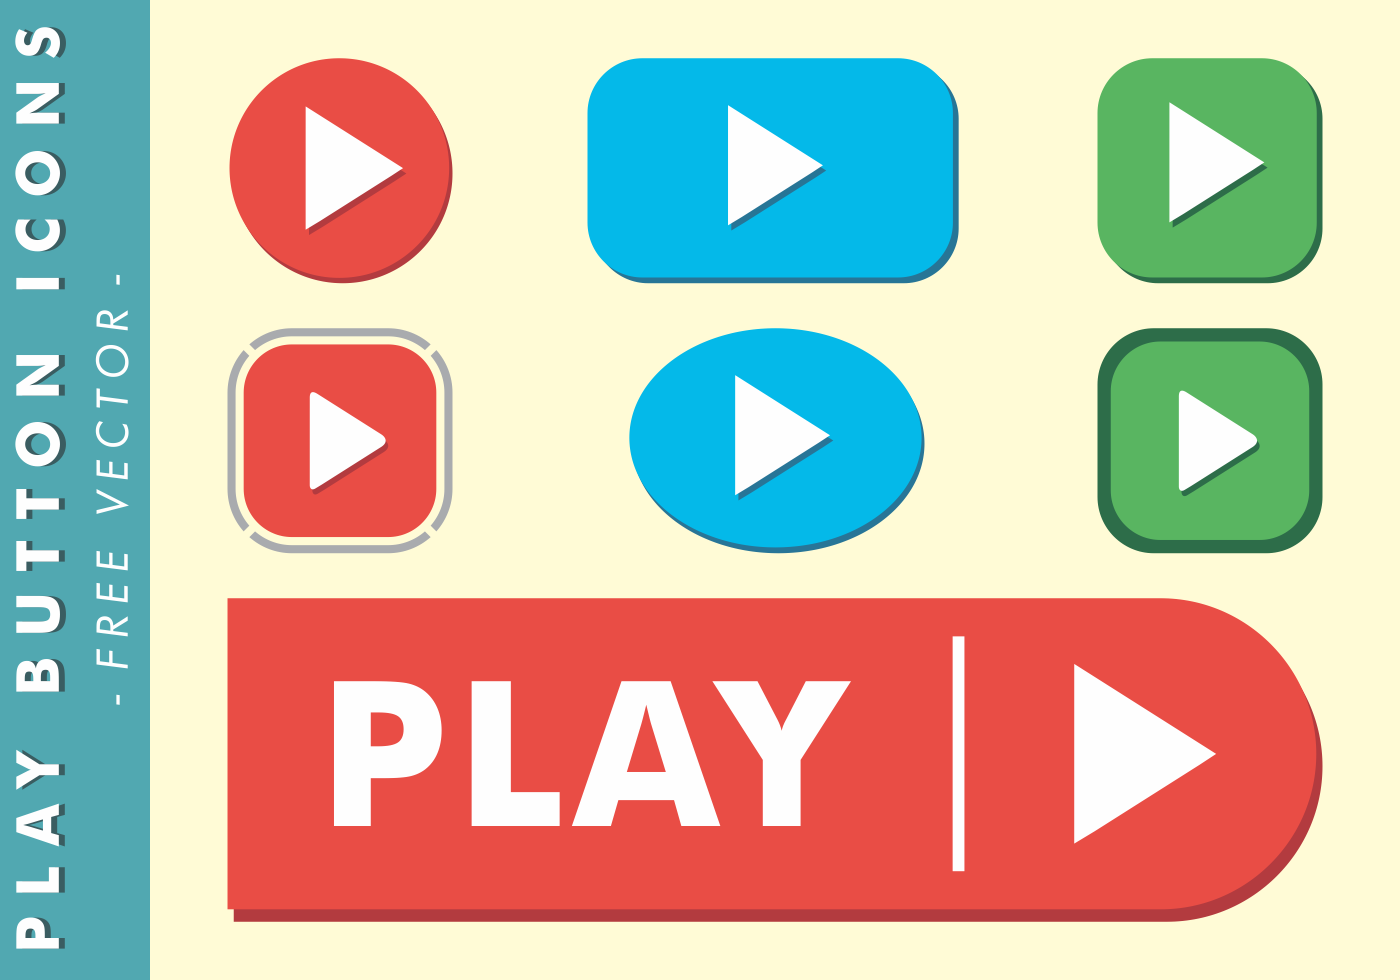 Play Button Icons Free Vector - Download Free Vectors, Clipart Graphics & Vector Art